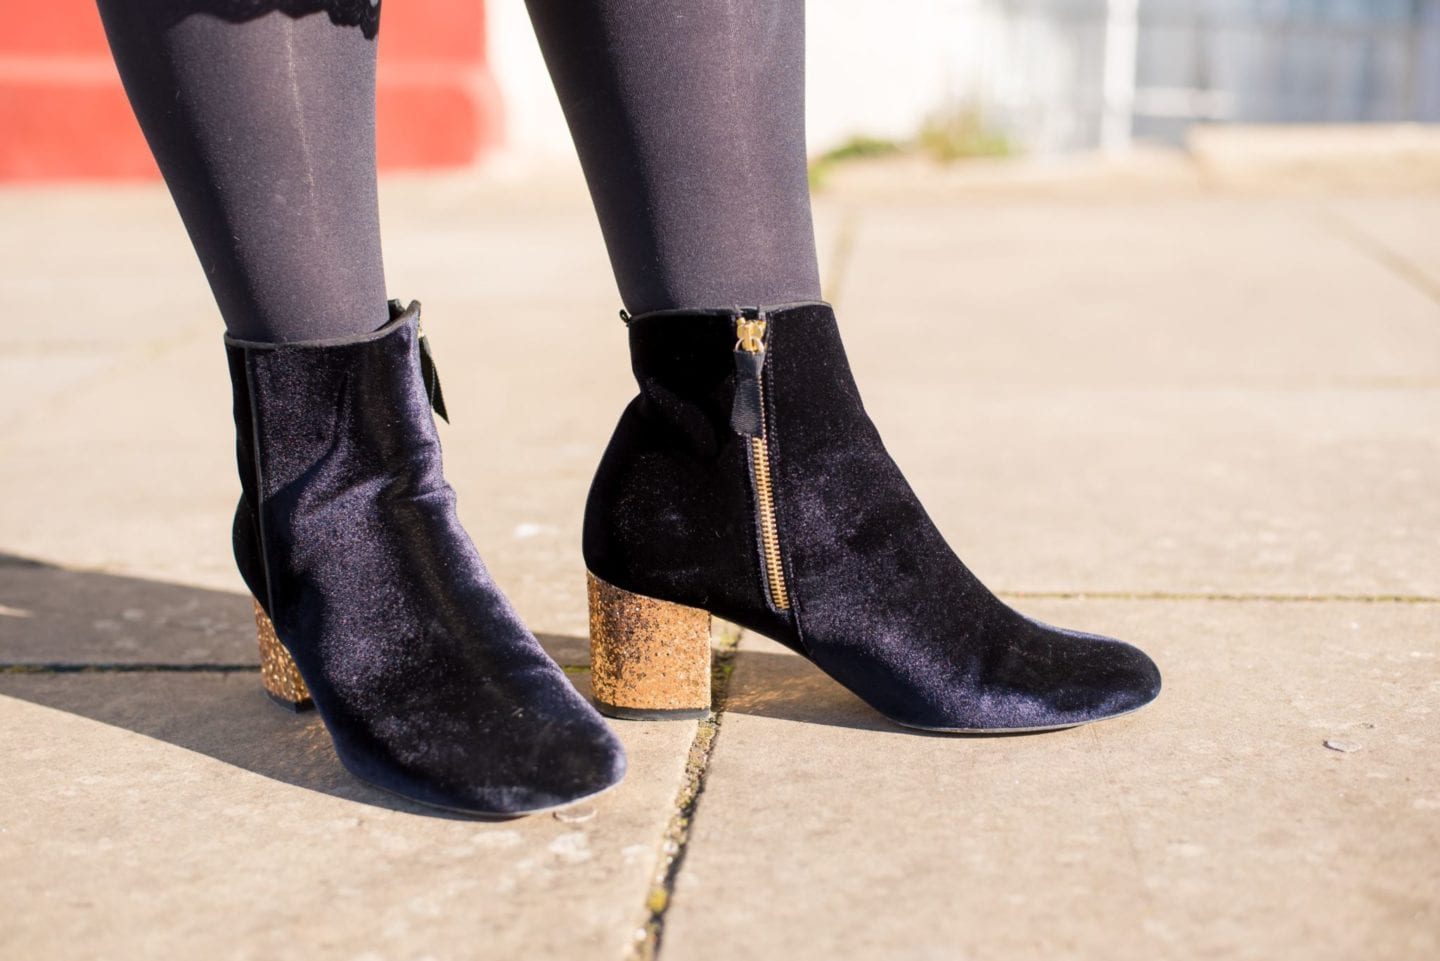 boden shoes boots gold glitter lana style